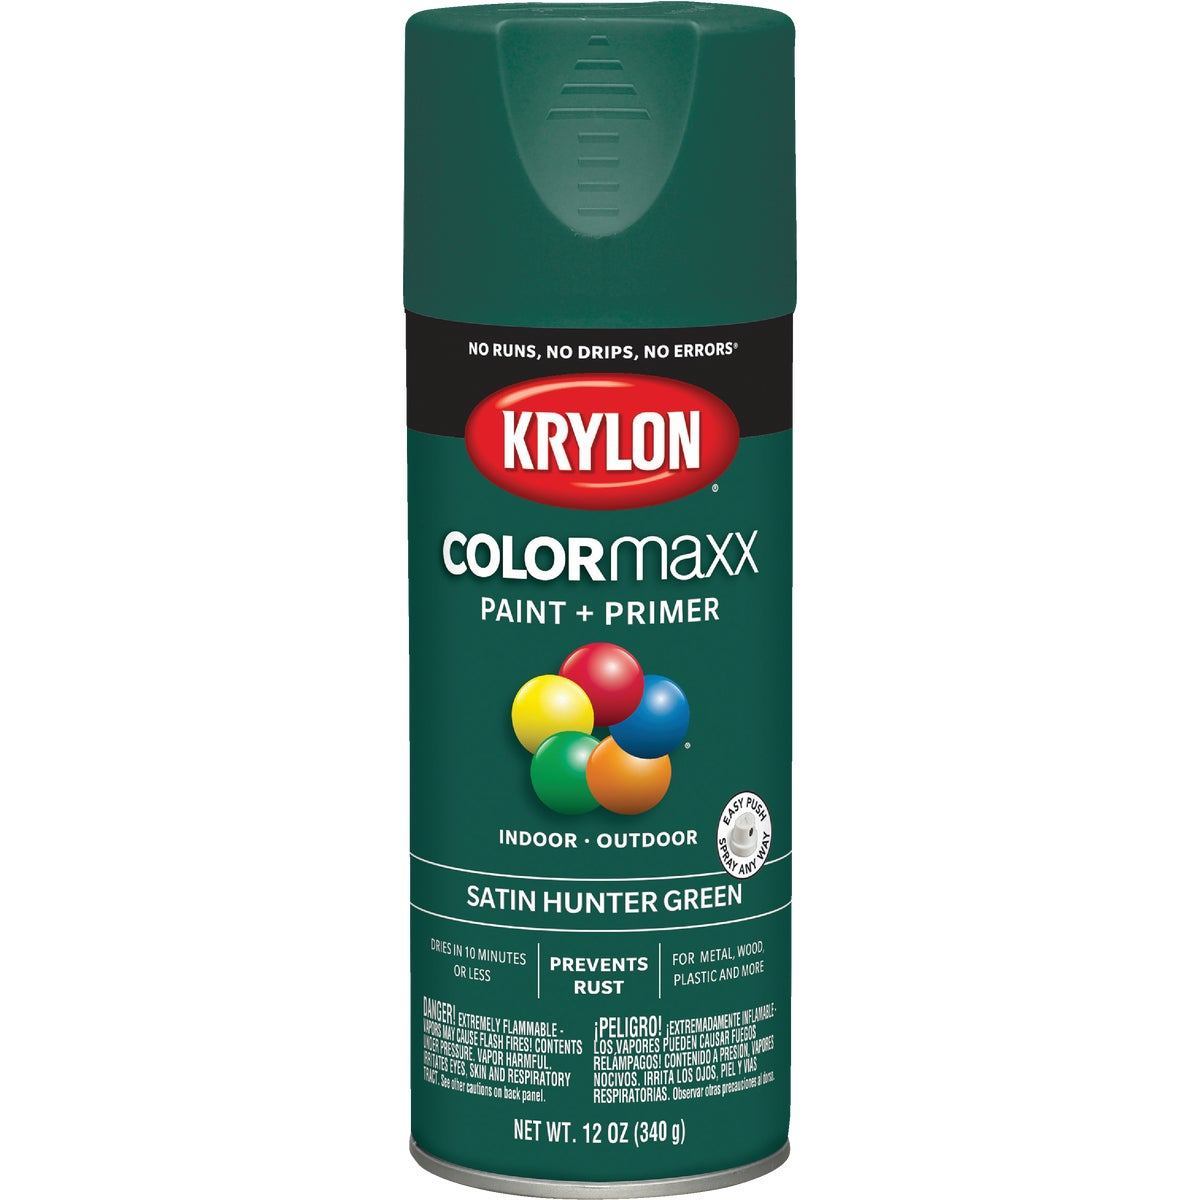 SAT HNTR GRN SPRAY PAINT - 53502 by Krylon/consumer Div